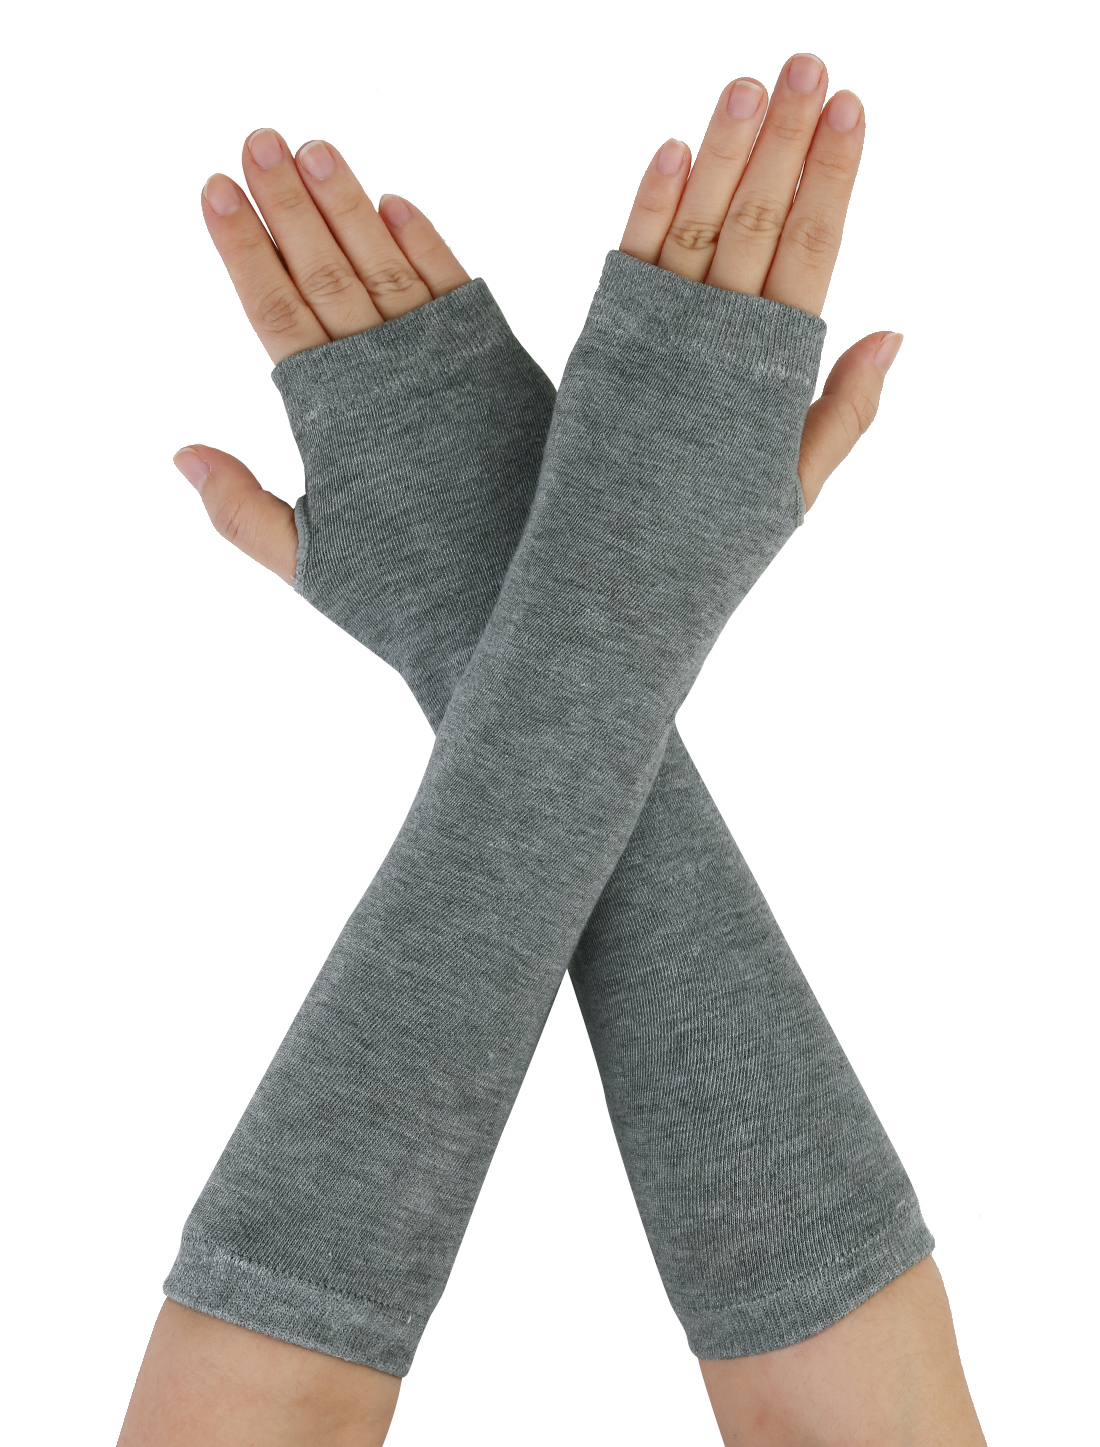 Women Girls Elastic Thumbless Fingerless Arm Warmers Gloves Gray